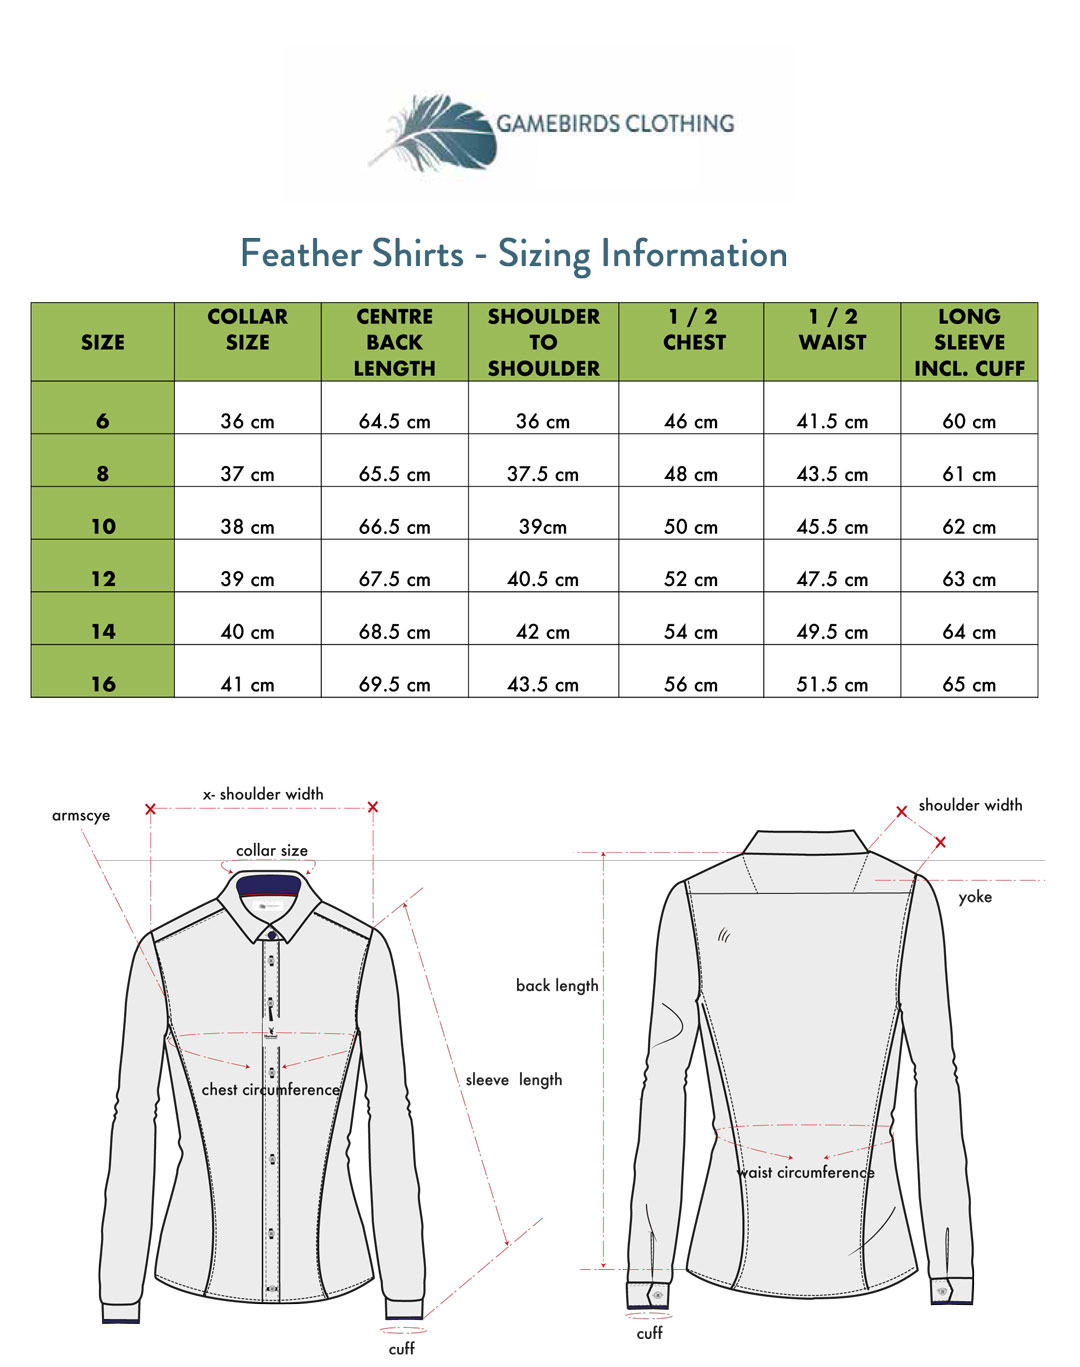 Feather Print Shirt Sizing